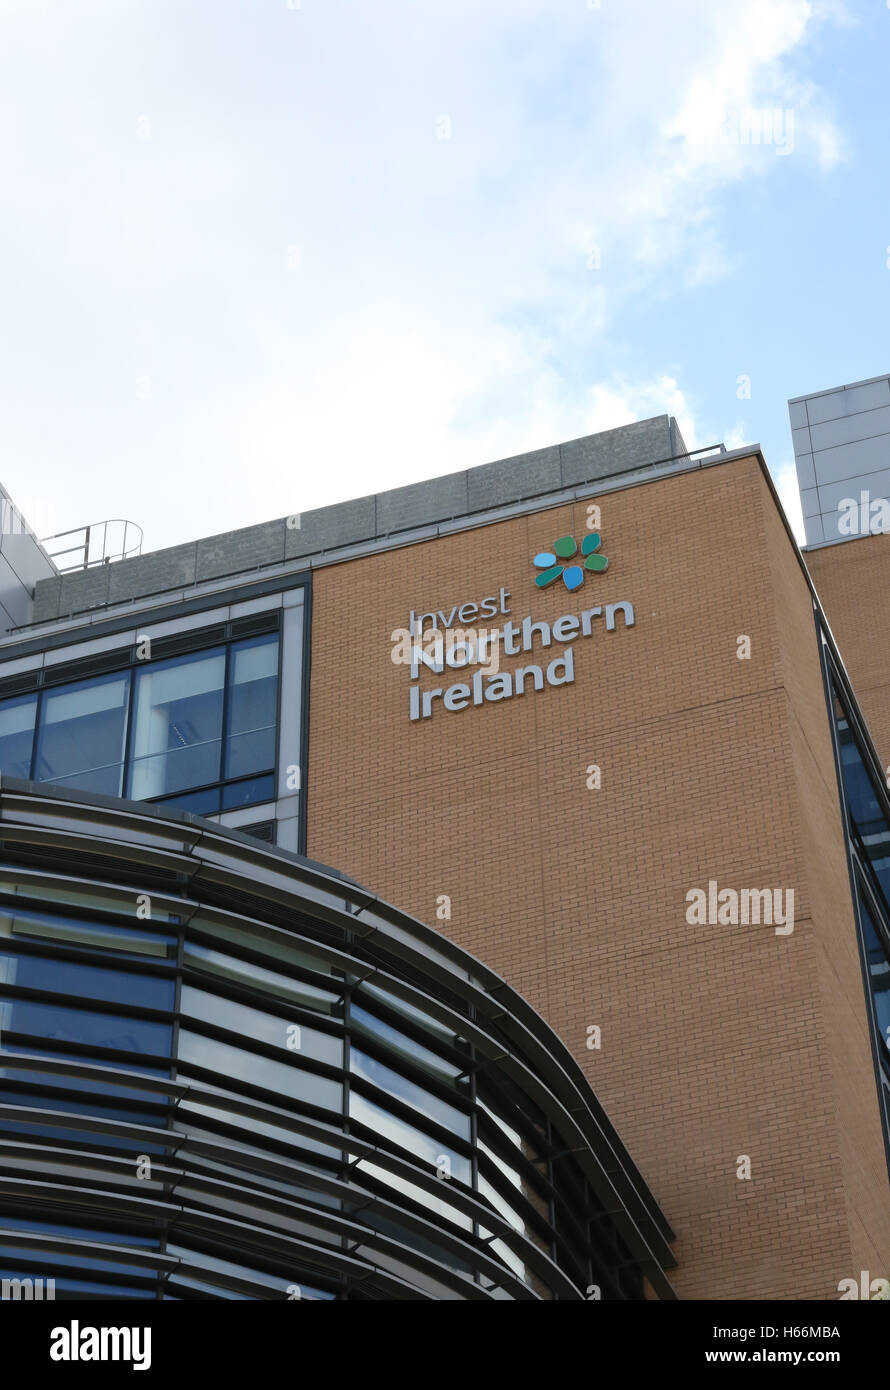 The Invest Northern Ireland (Invest NI) building in Bedford Street, Belfast, Northern Ireland. The building is also - Stock Image